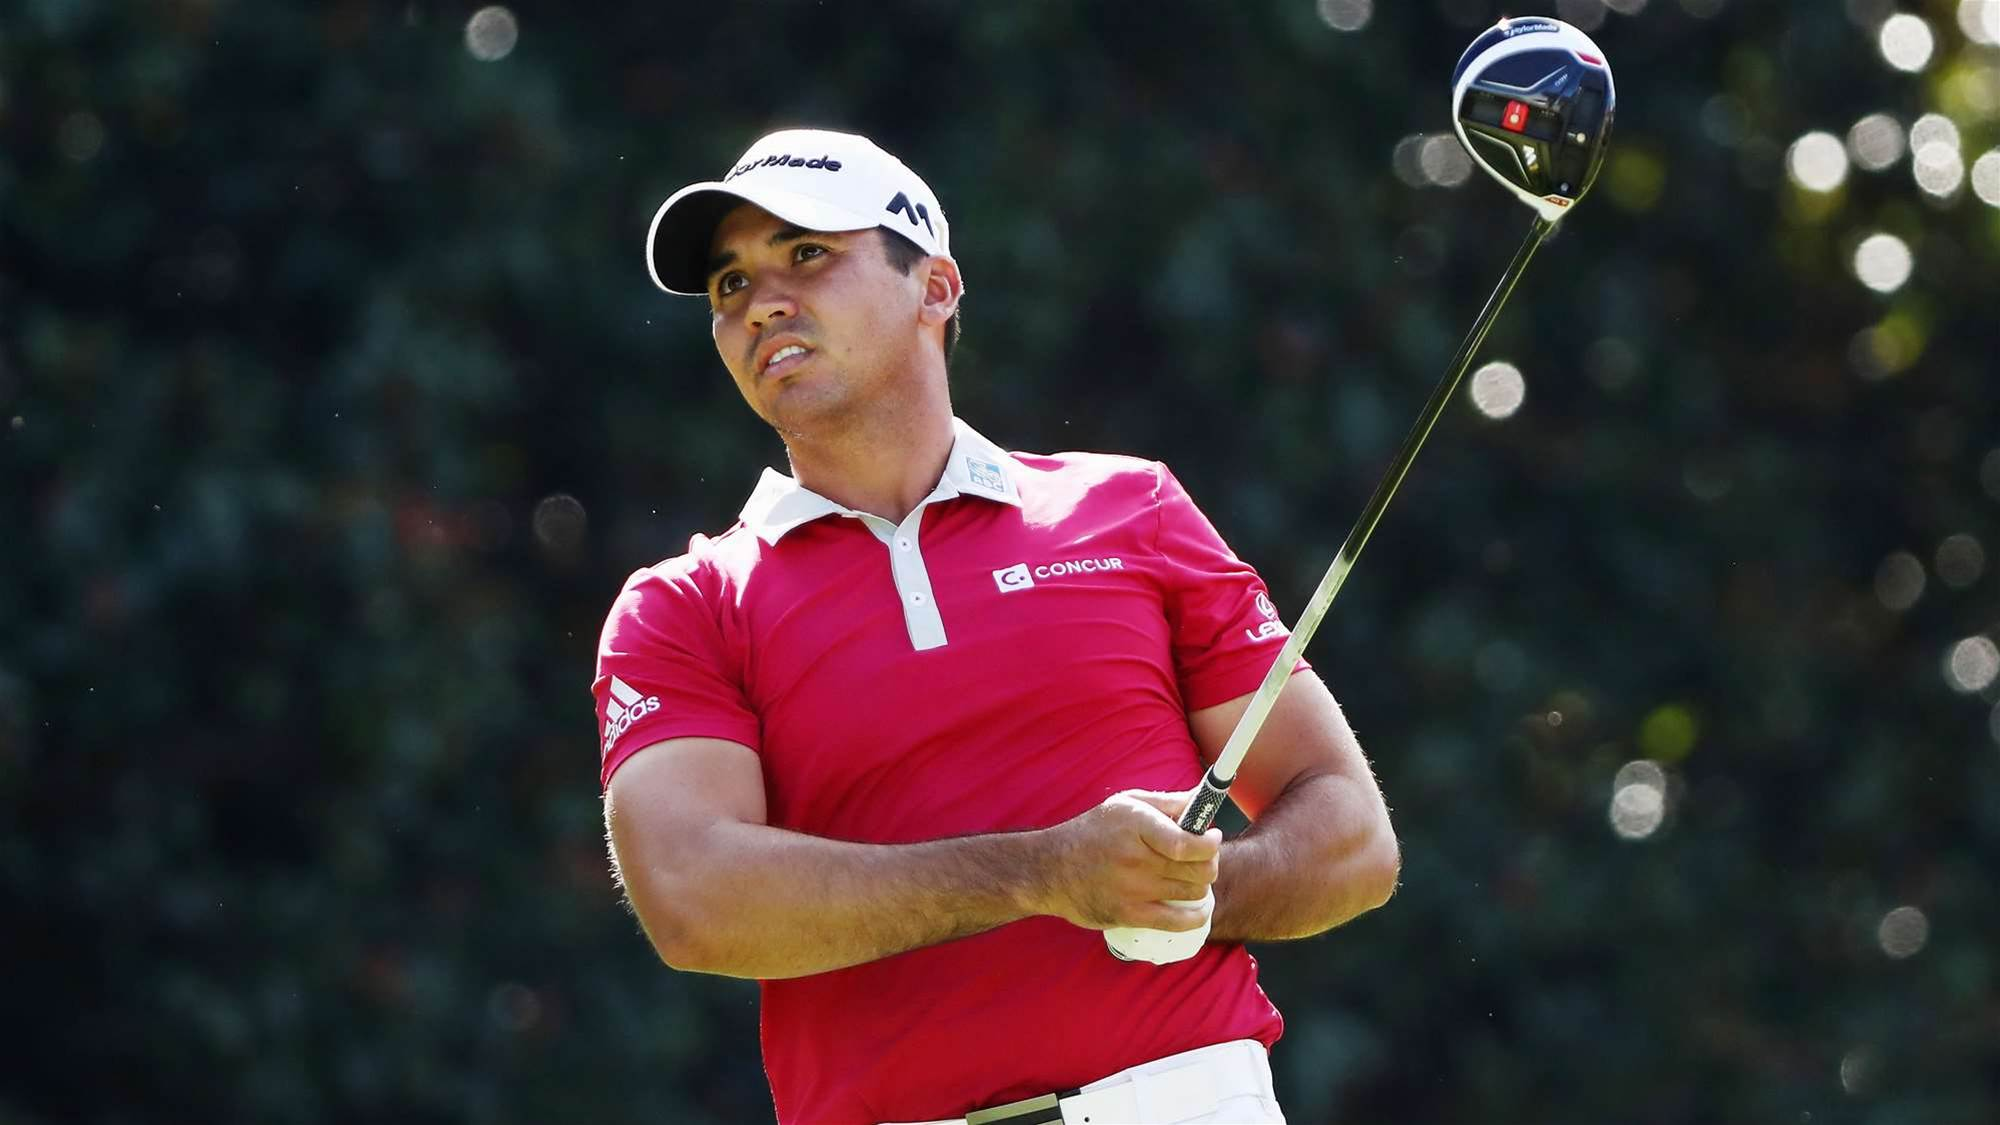 PGA TOUR: Hurt Day well placed at Tour Championship